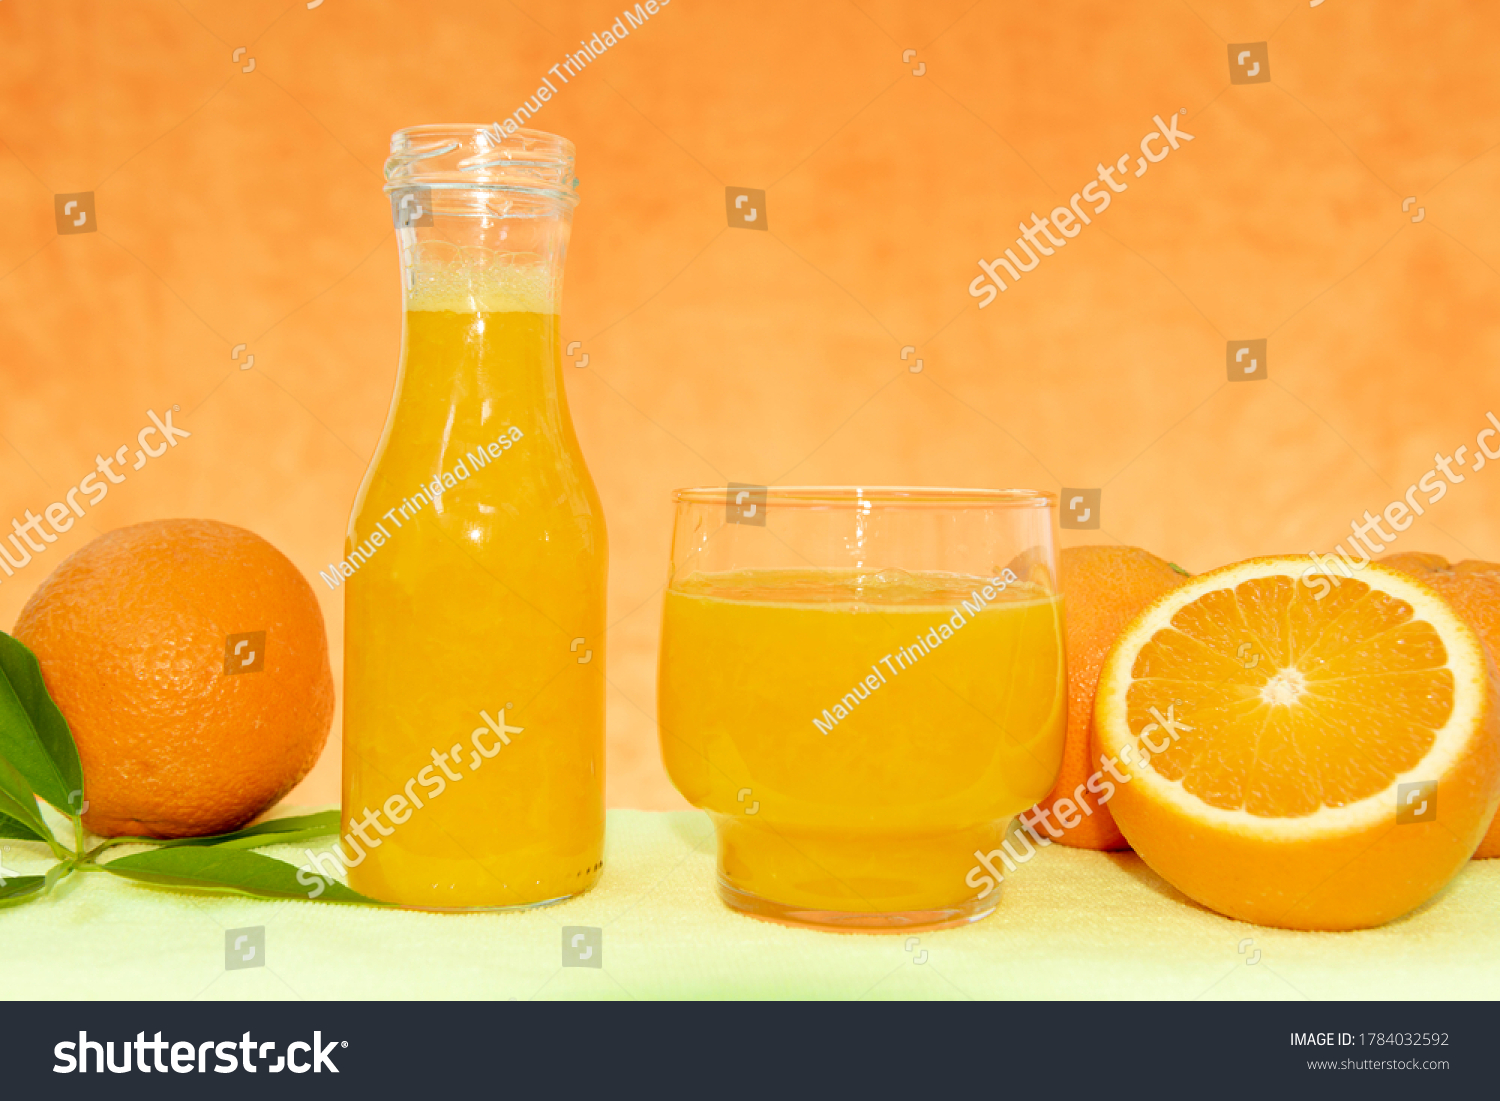 stock-photo-glass-bottle-with-fresh-oran